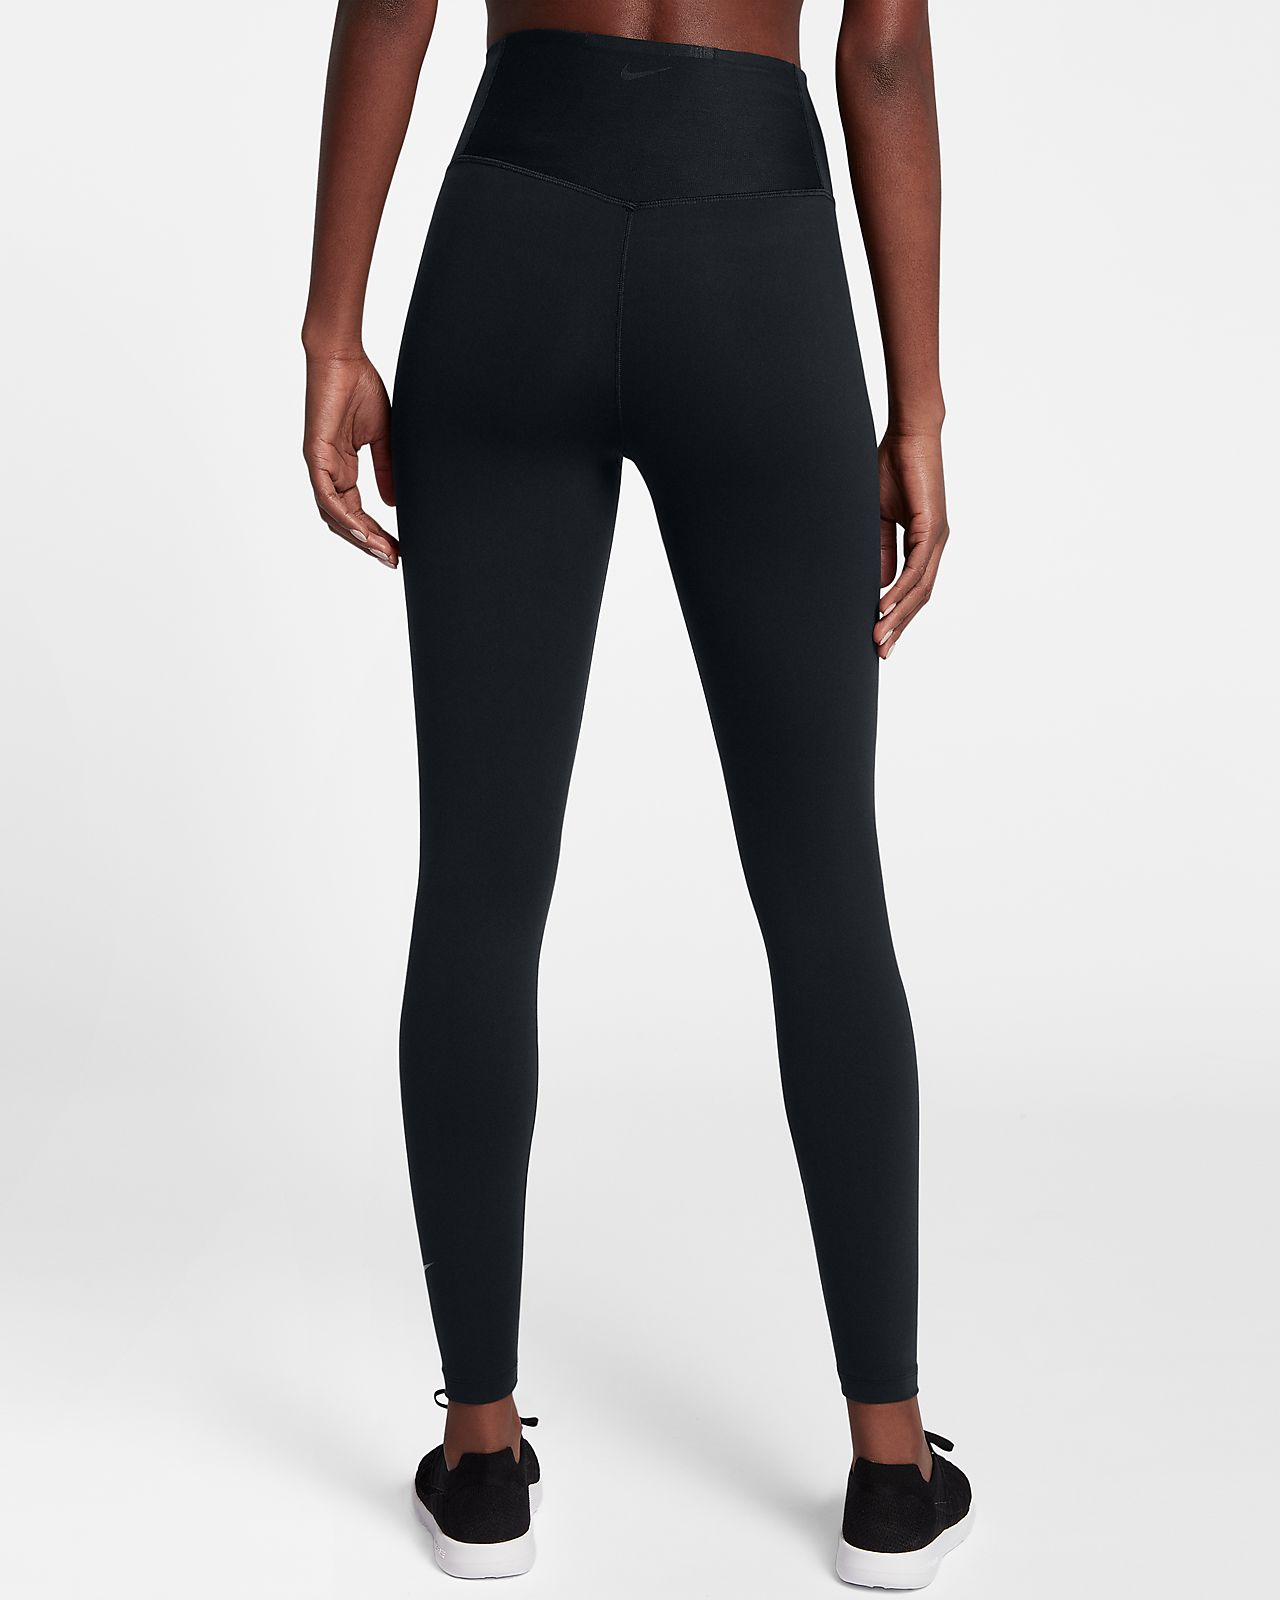 ba15565fc39a07 Nike Sculpt Lux Women's High-Waist Training Tights. Nike.com GB